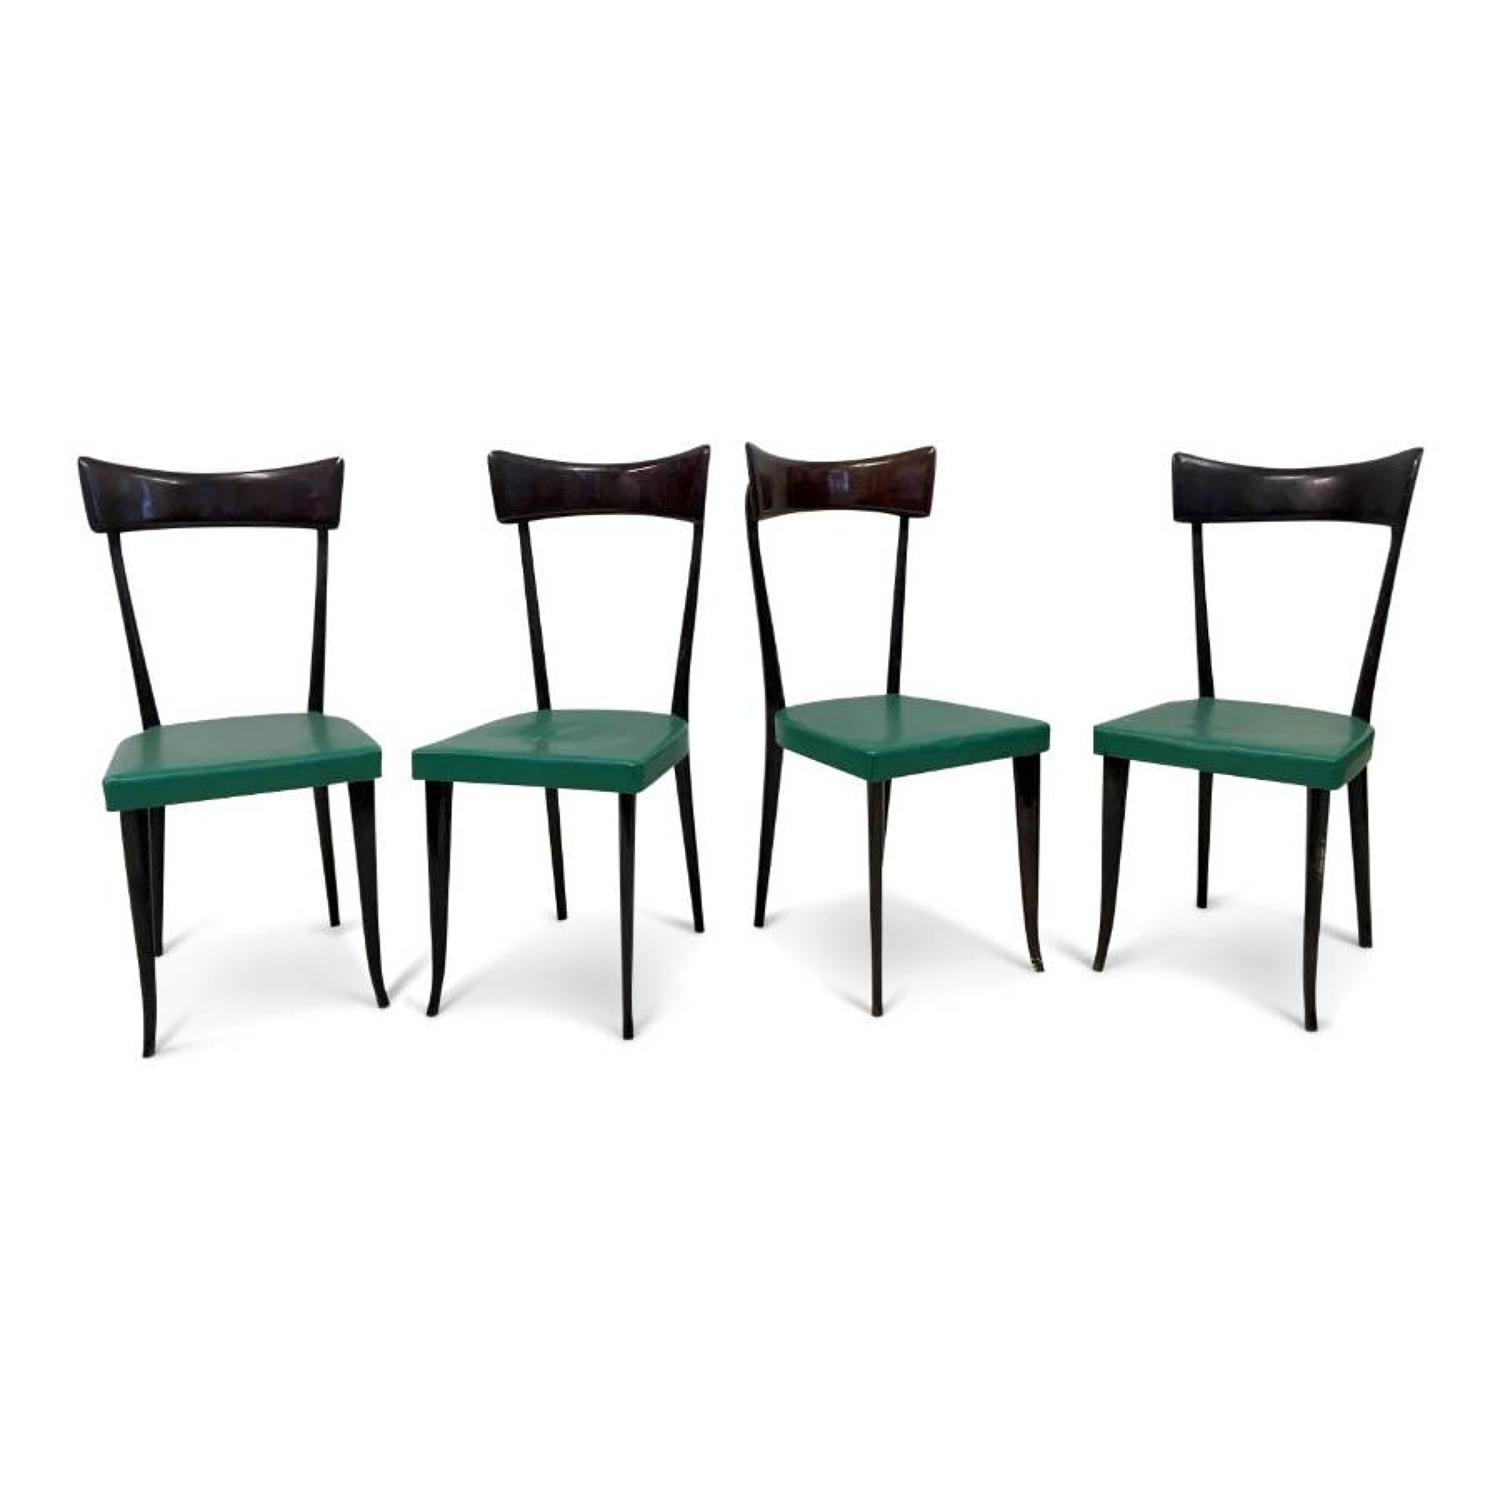 A set of four Ico Parisi style dining chairs